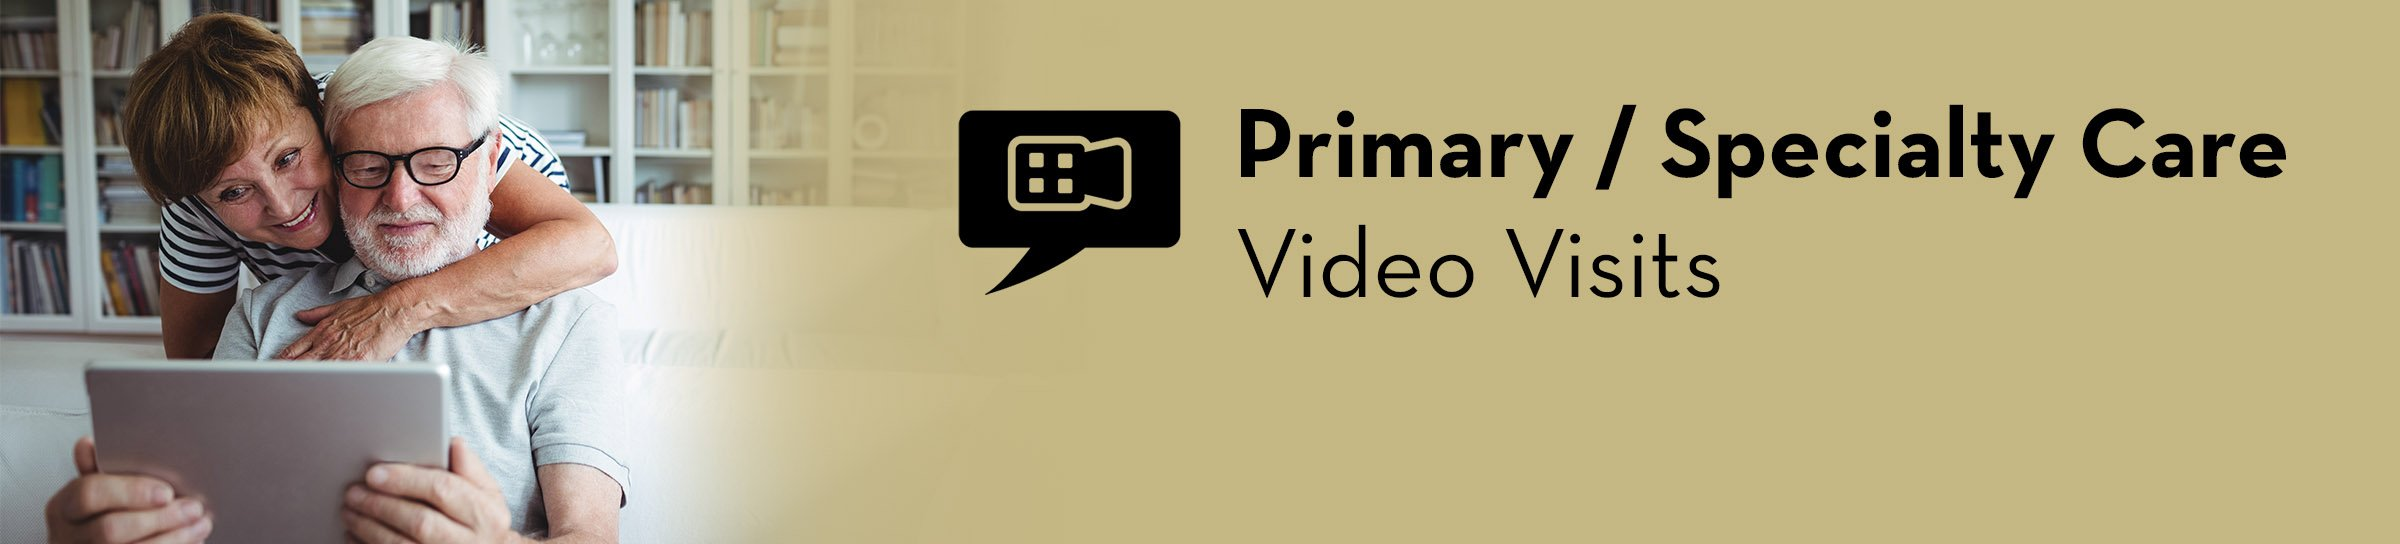 Primary and specialty care video visits